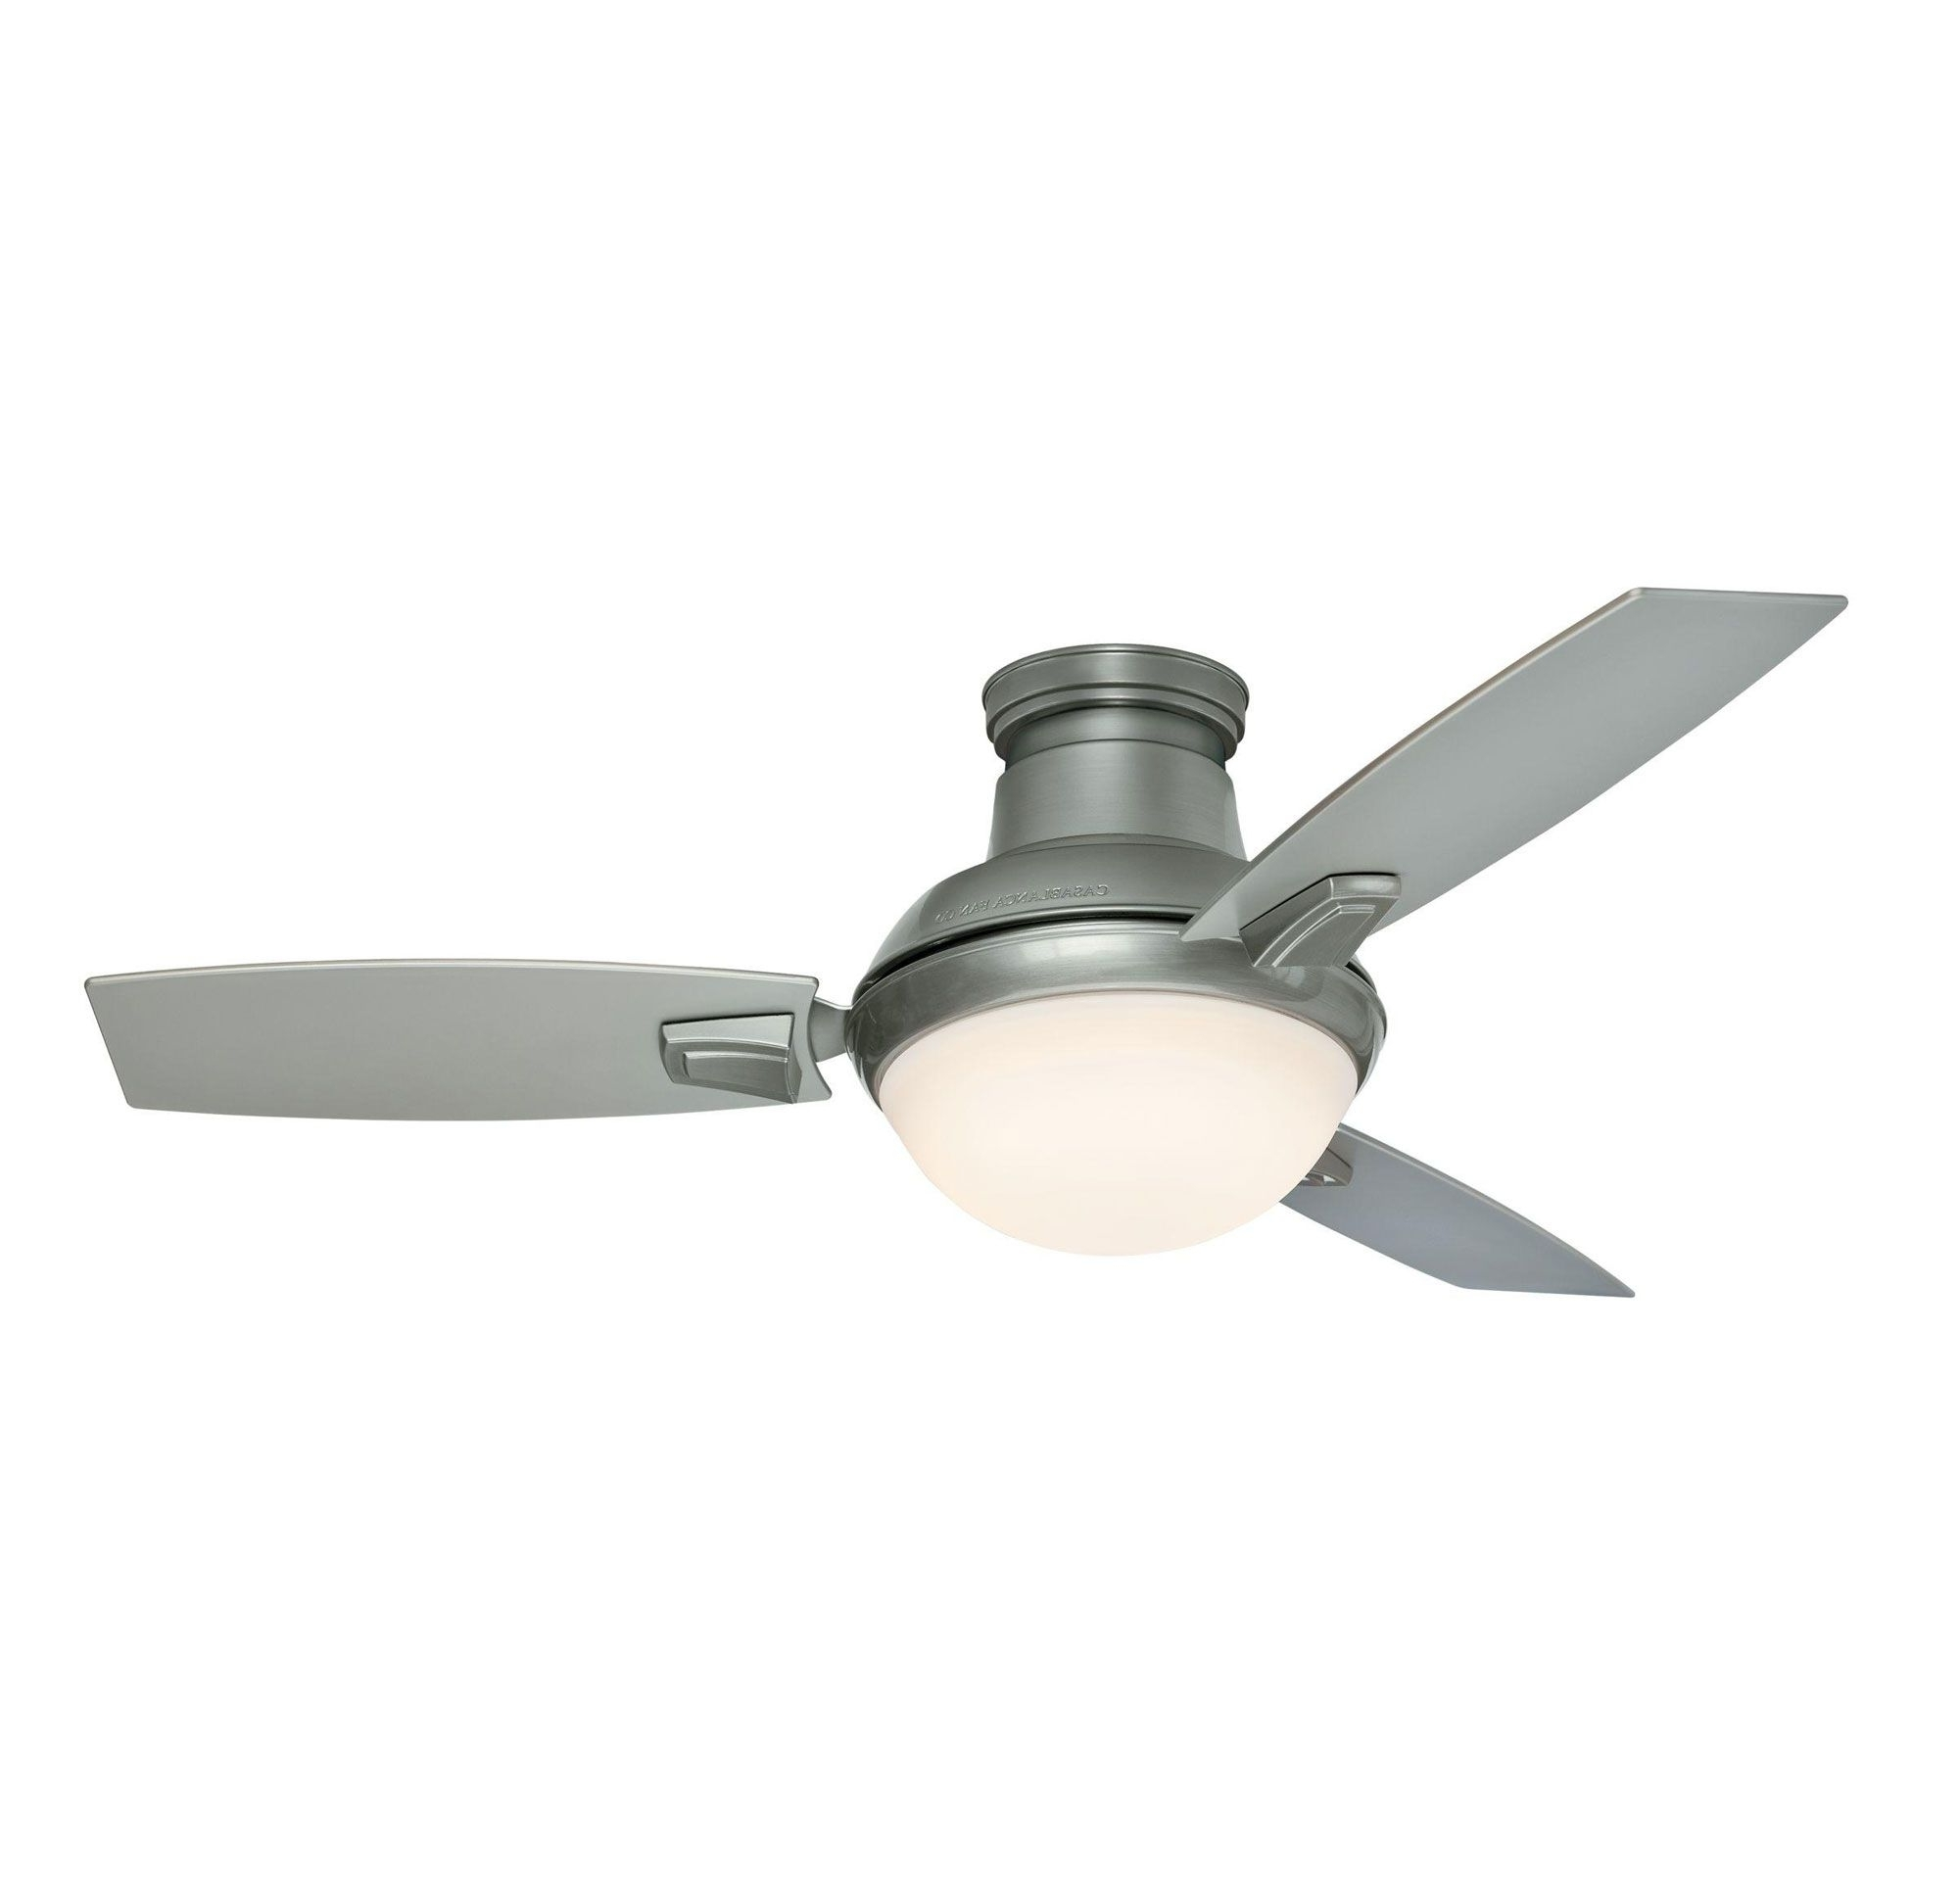 Fashionable Verse 44 Inch Led Ceiling Fan Is Perfect For A Small Or Medium Sized Inside 44 Inch Outdoor Ceiling Fans With Lights (View 13 of 20)